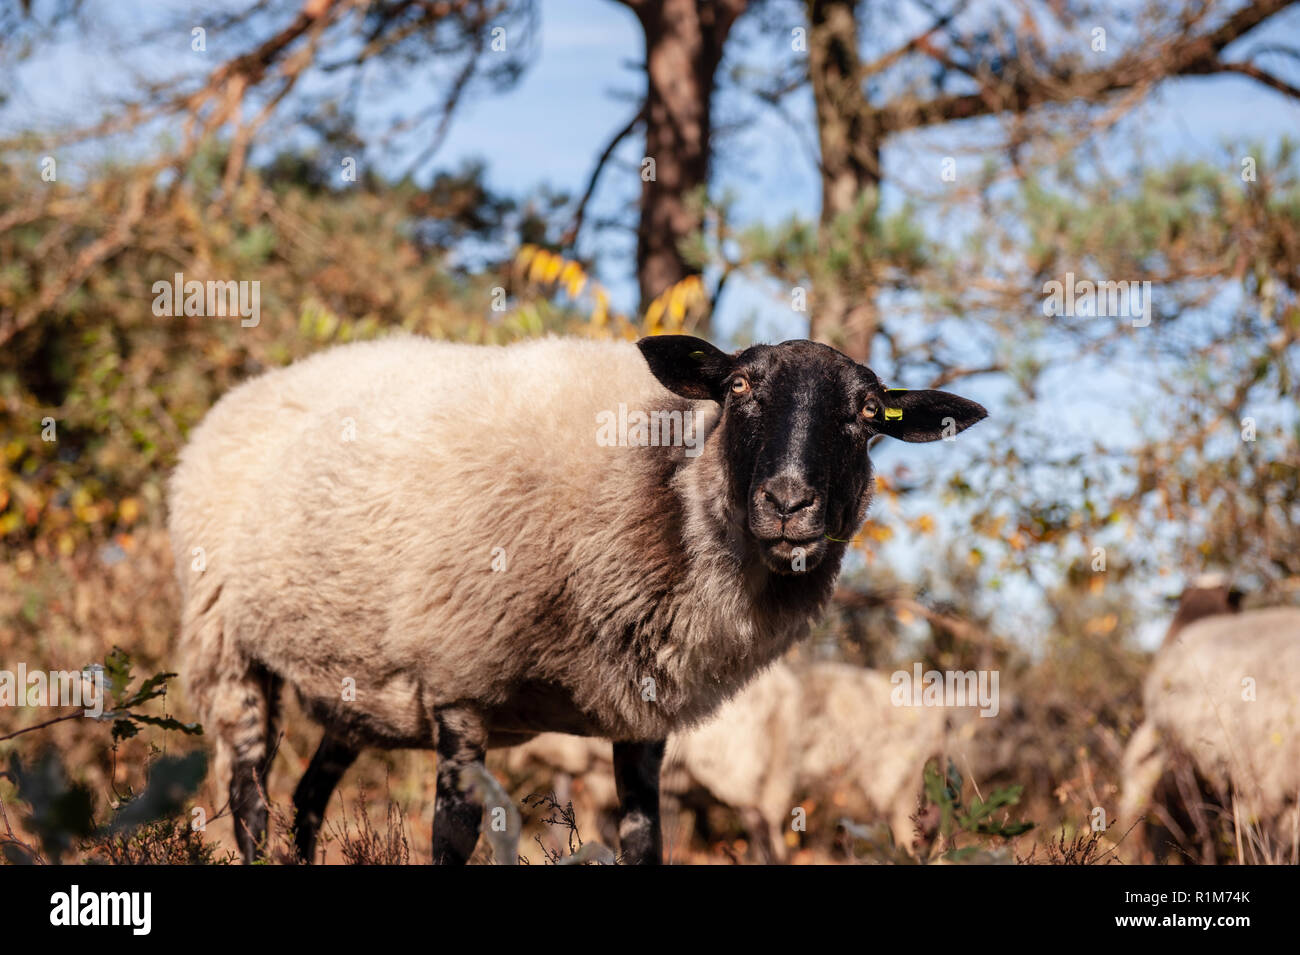 A herd of Heather Sheep grazing at the Drentse AA area, near the Town of Zeegse, at the moorlands, in the North of the Netherlands. Image from a fall - Stock Image